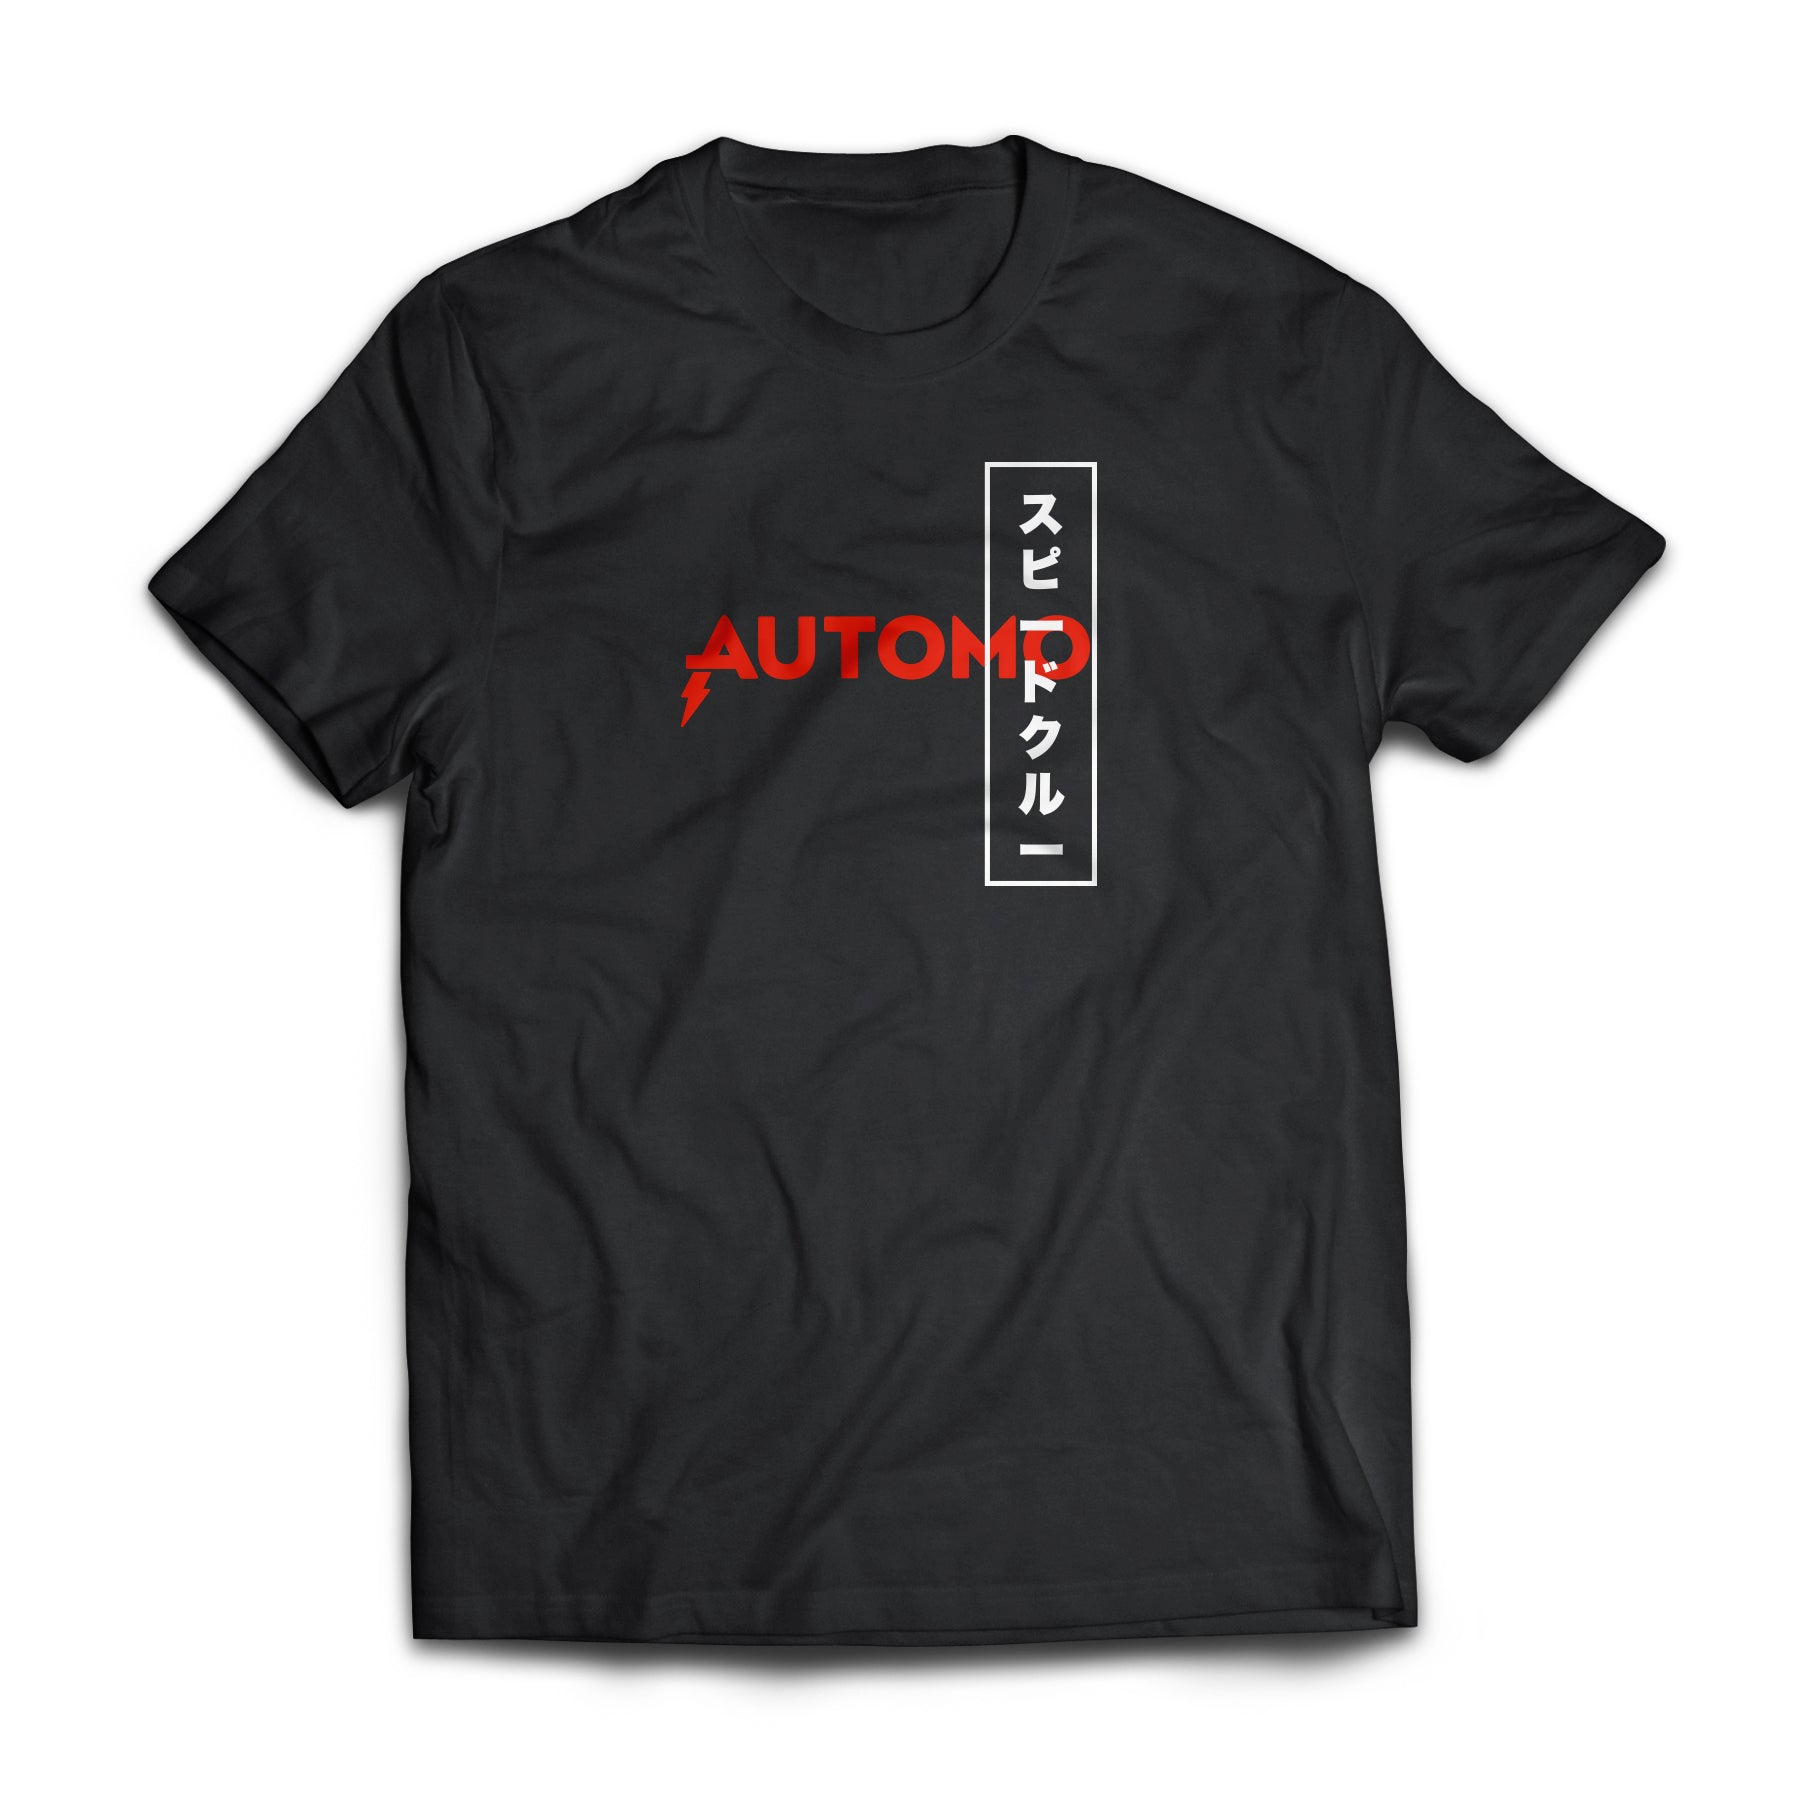 Automo Japanese Speed Crew T-Shirt - Automo